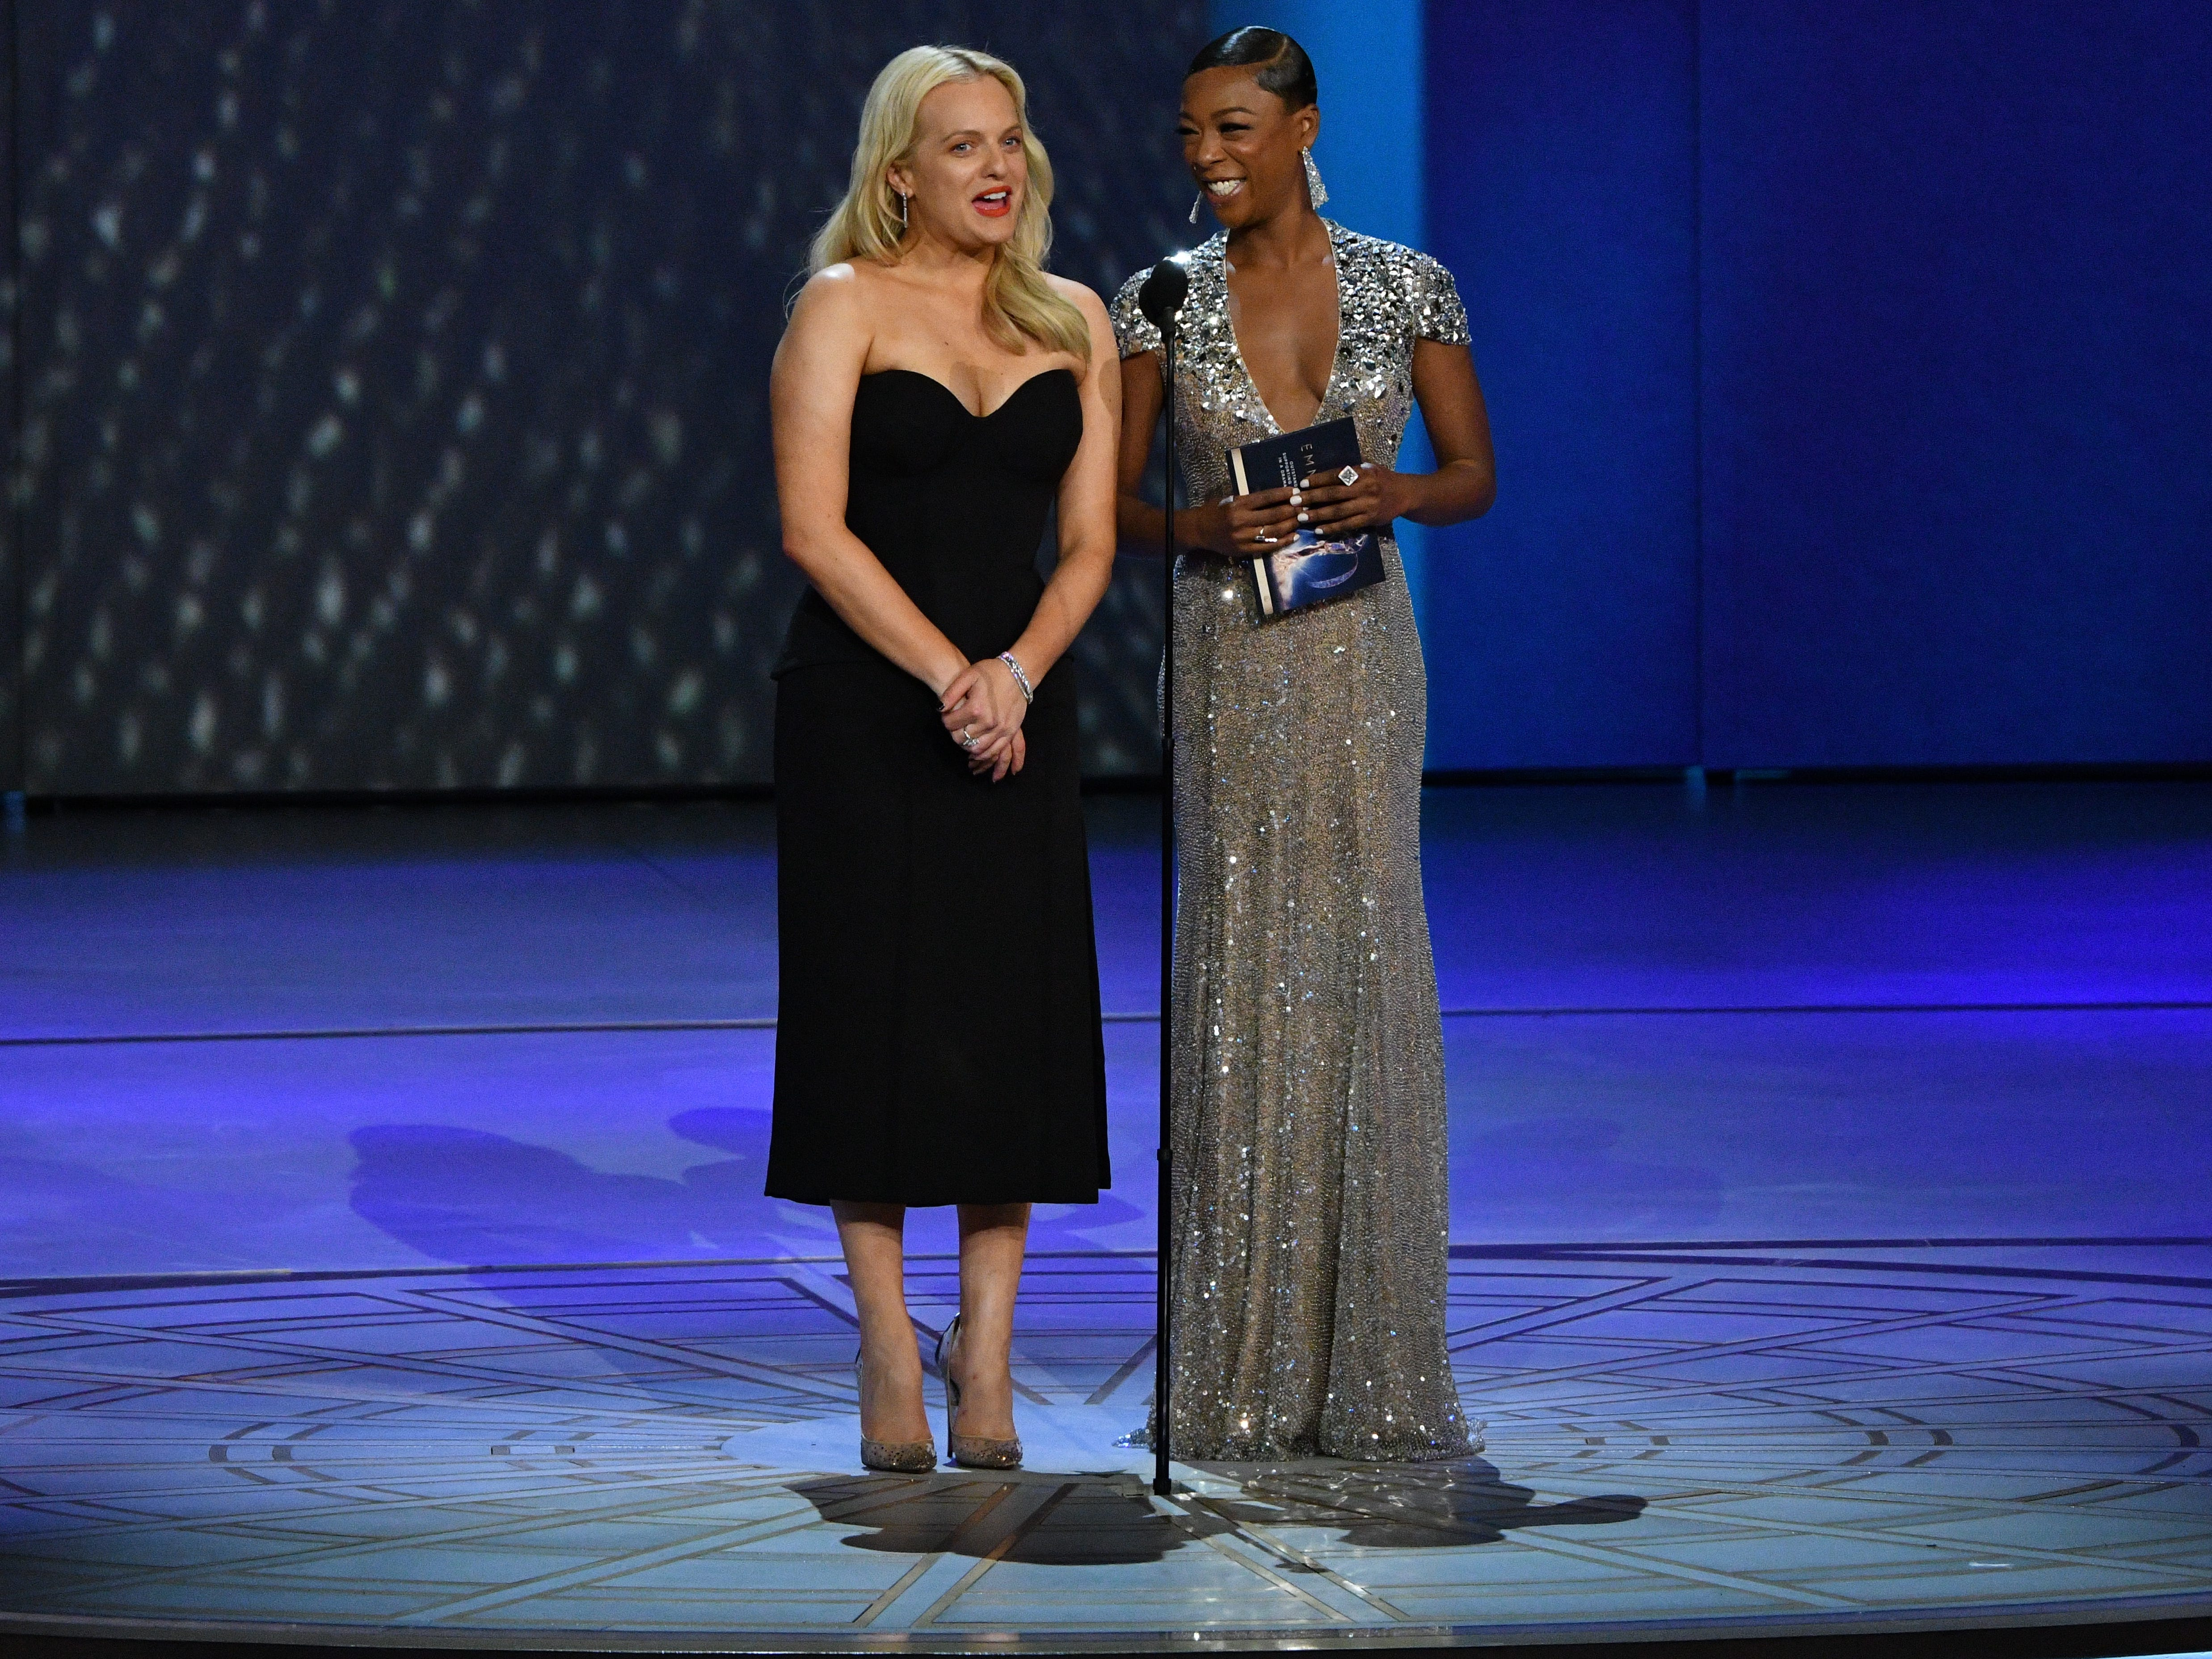 Elisabeth Moss, left, and Samara Wiley present the award for supporting actress in a drama series.